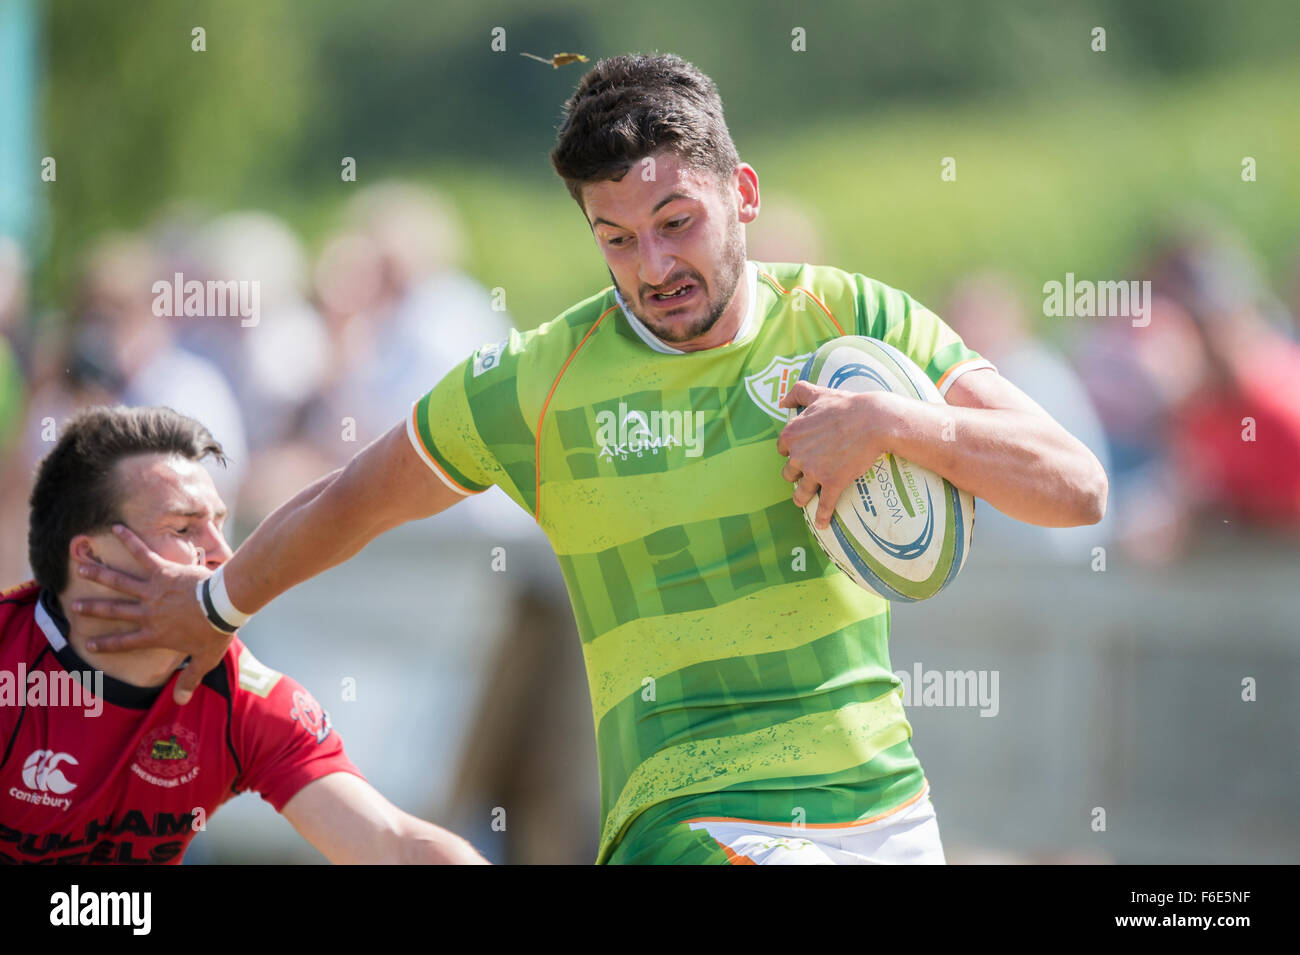 Rugby player in action - Stock Image